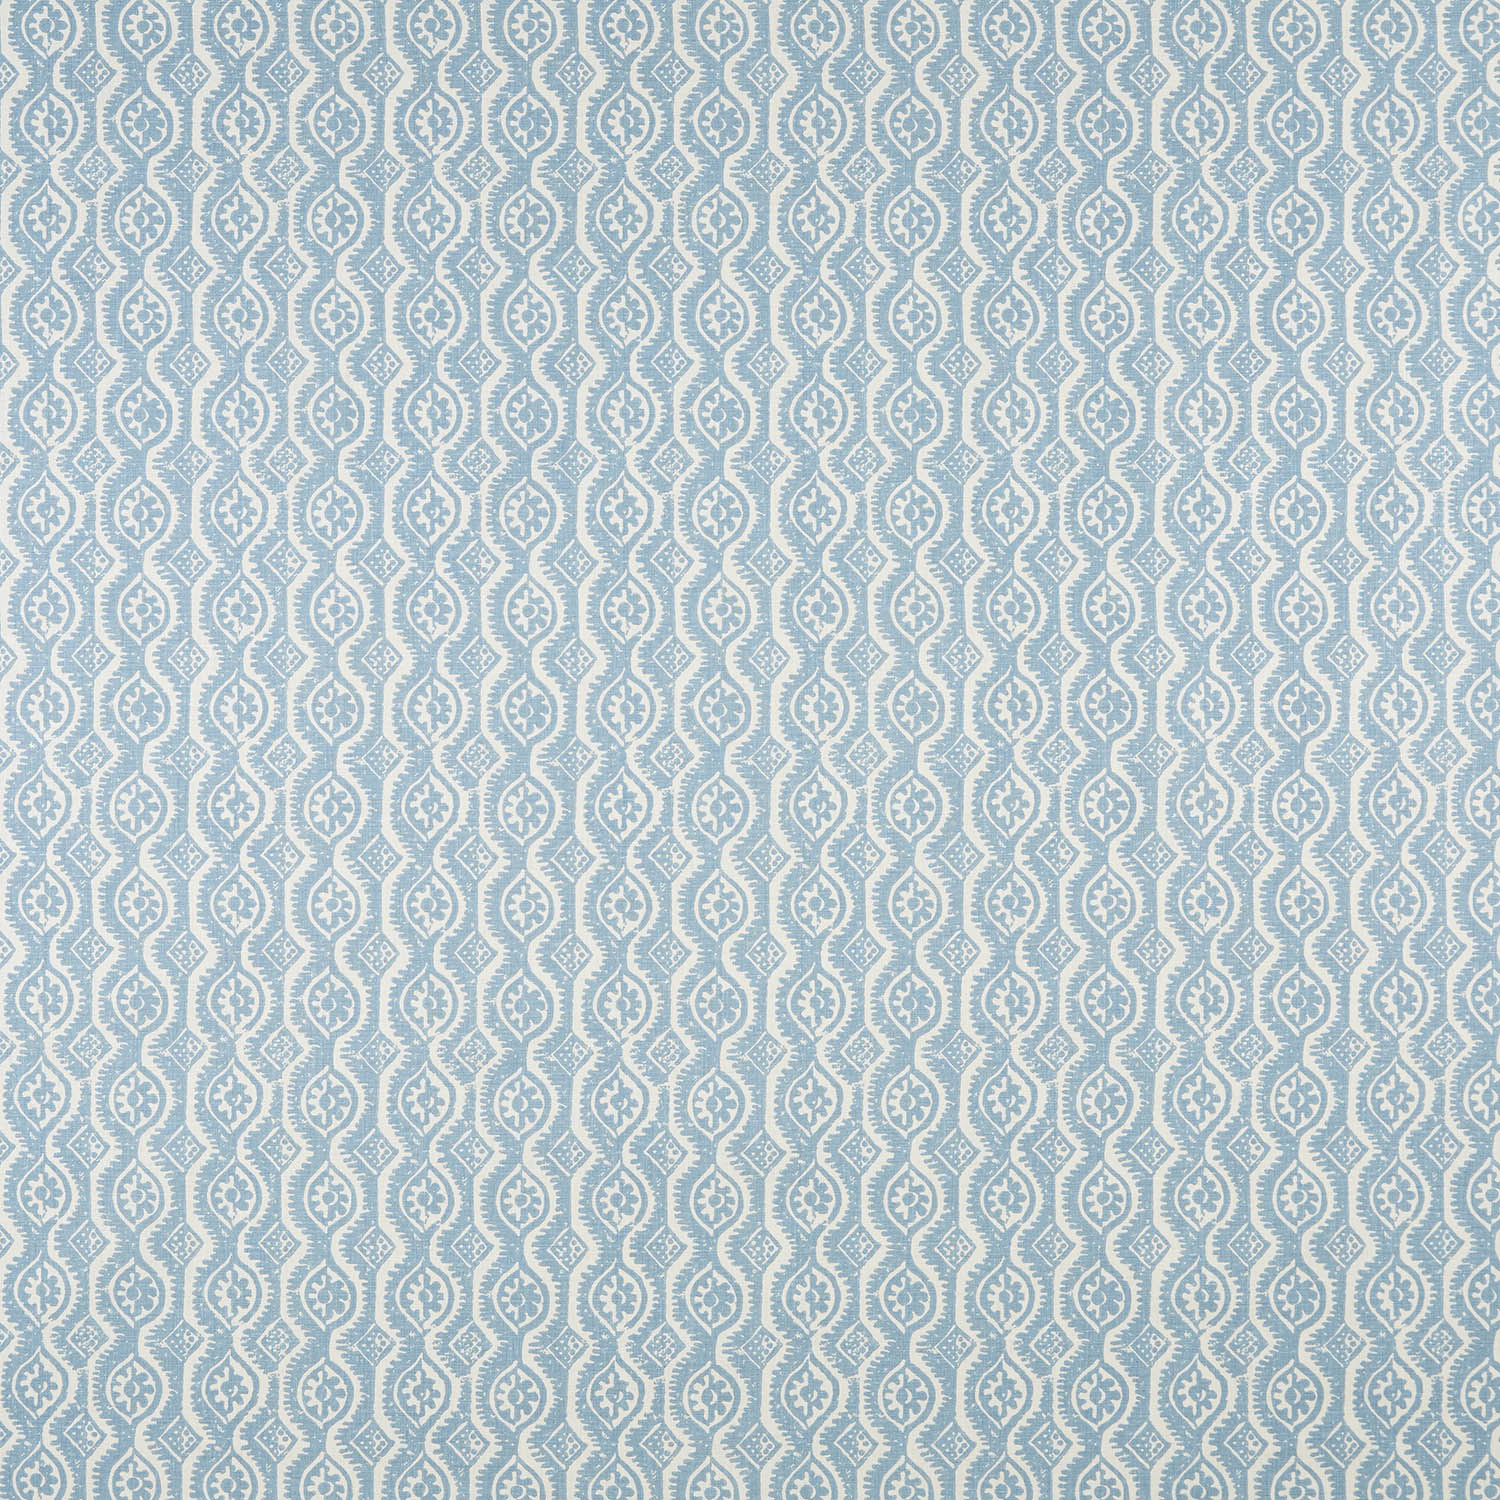 <p><strong>SMALL DAMASK</strong>delft blue/oyster 2900-06<a href=/the-somerton-collection/small-damask-delft-blue-oyster-2900-06>More →</a></p>